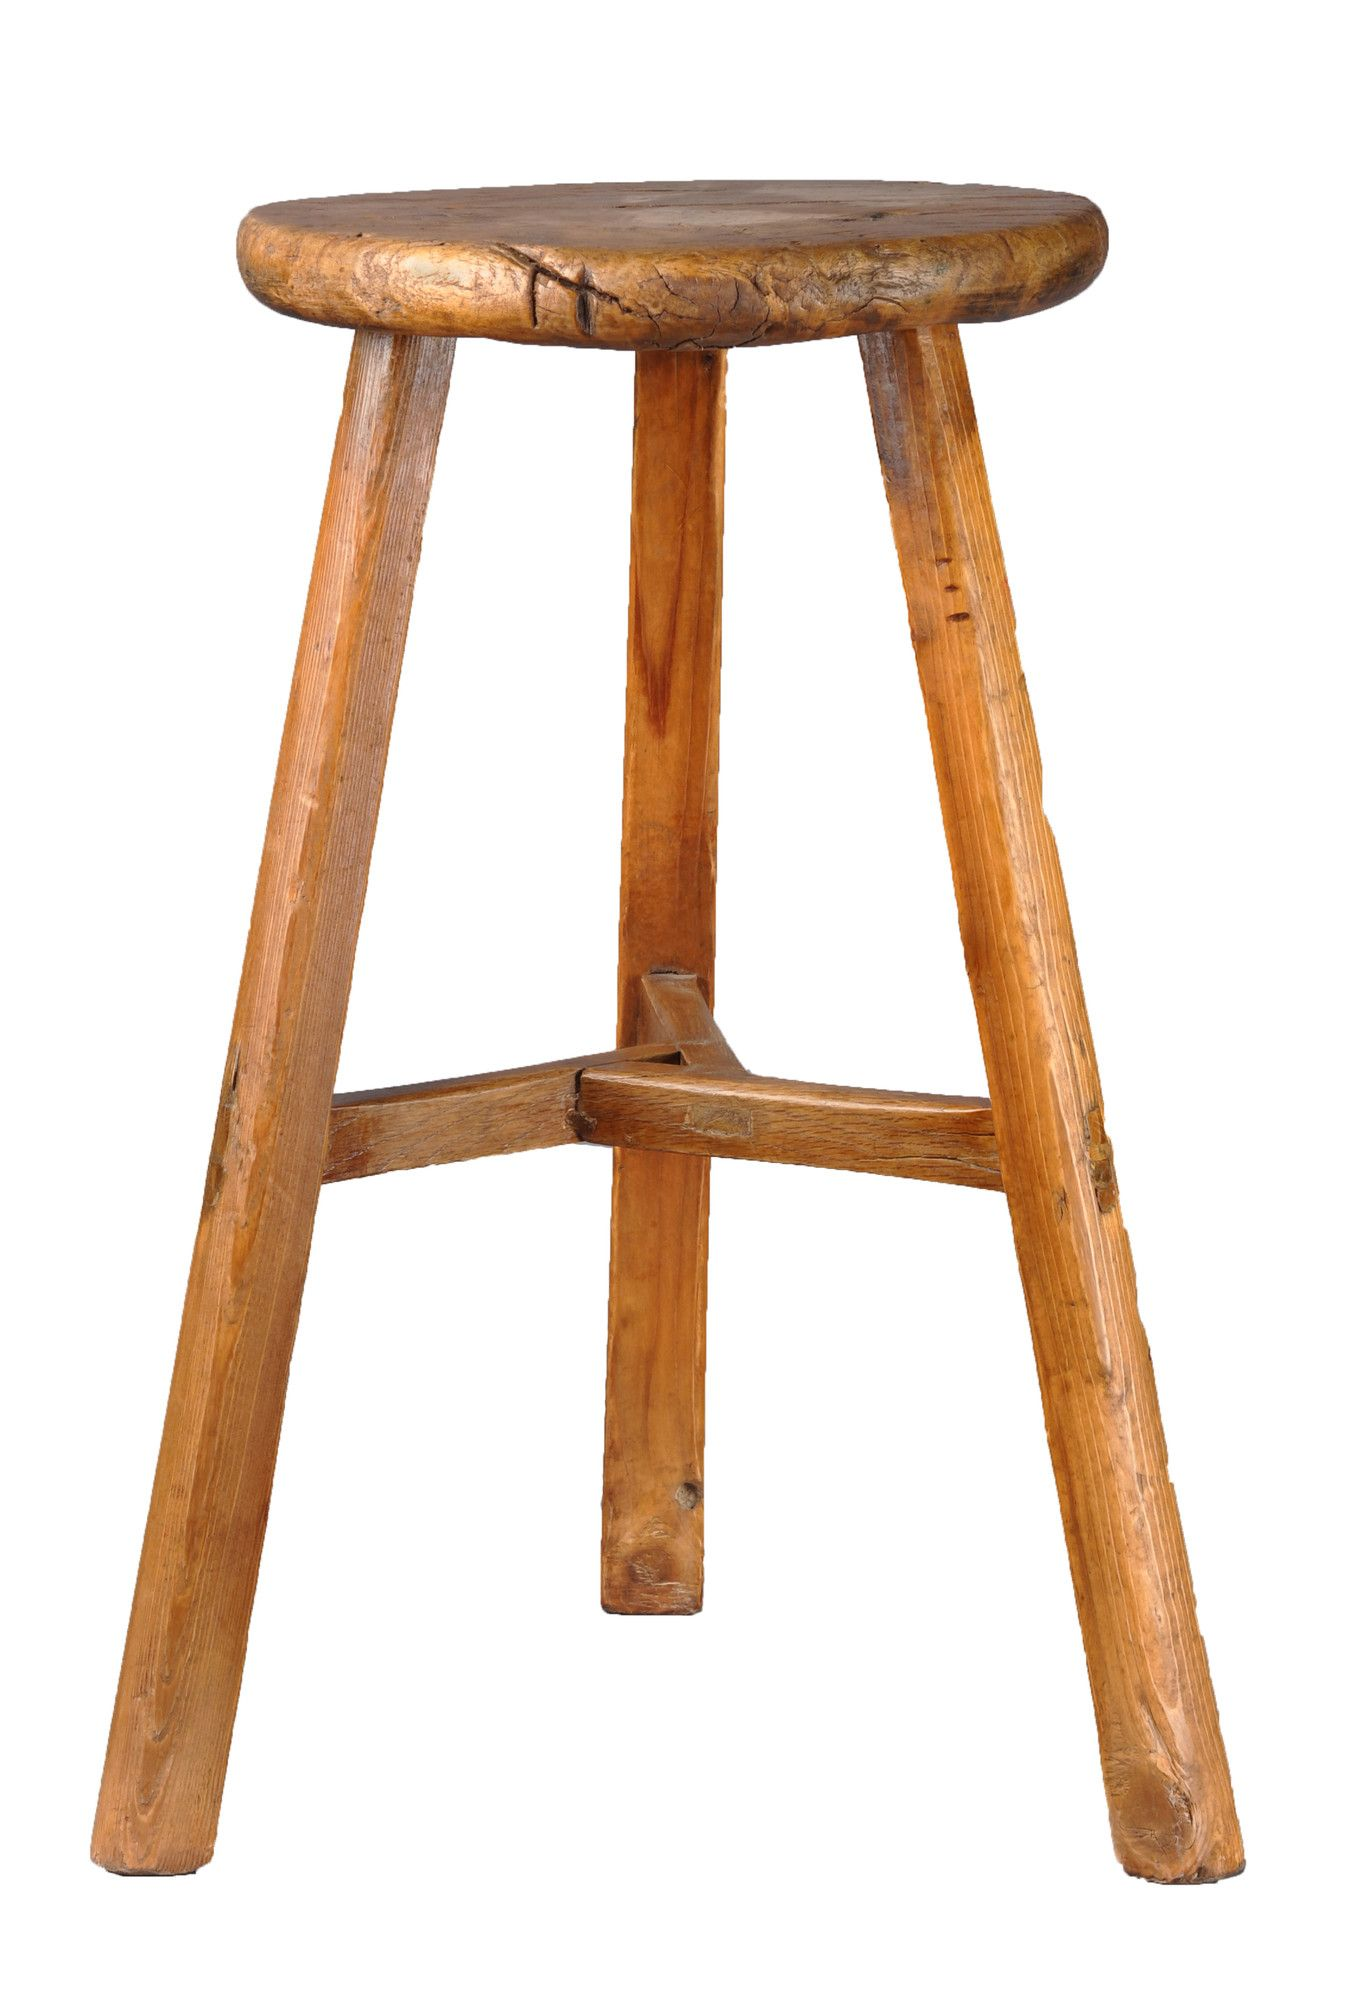 Country crafted wooden chair and stool ebth - Vintage Country Stool Overstock Shopping Great Deals On Antique Revival Bar Stools